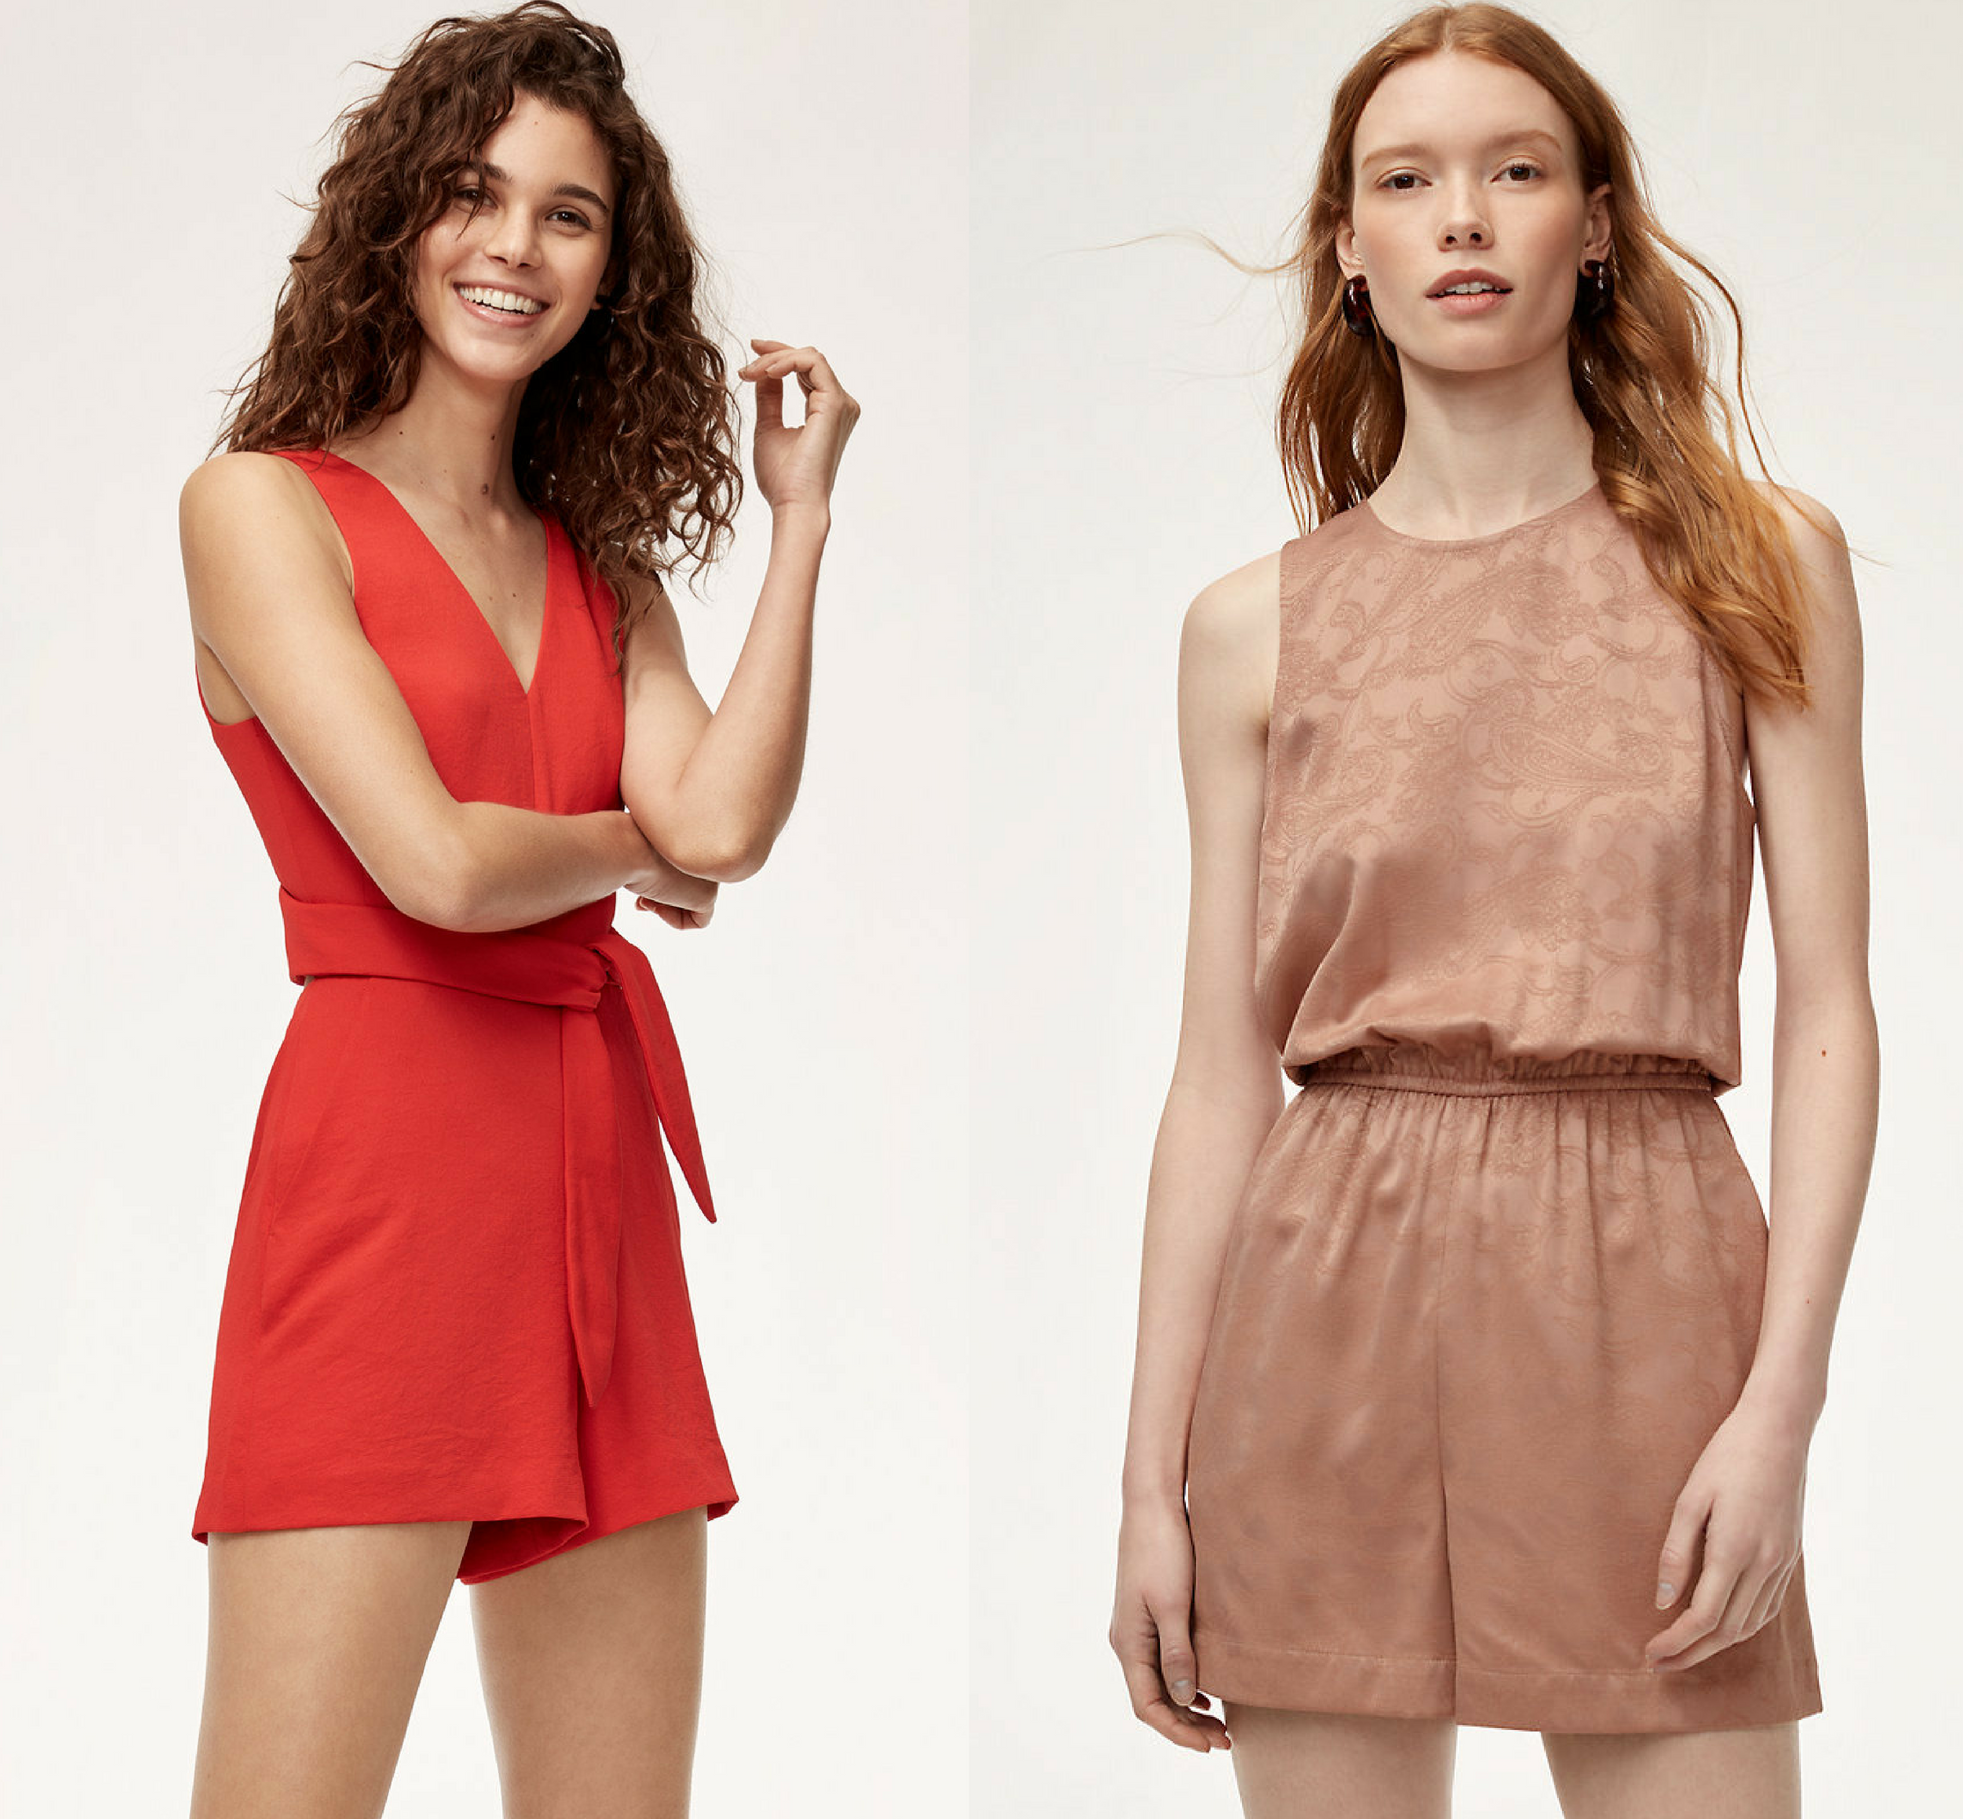 shop the look - Aritzia- Wilfred Ecoulement Romper (left) Rive Romper (right)